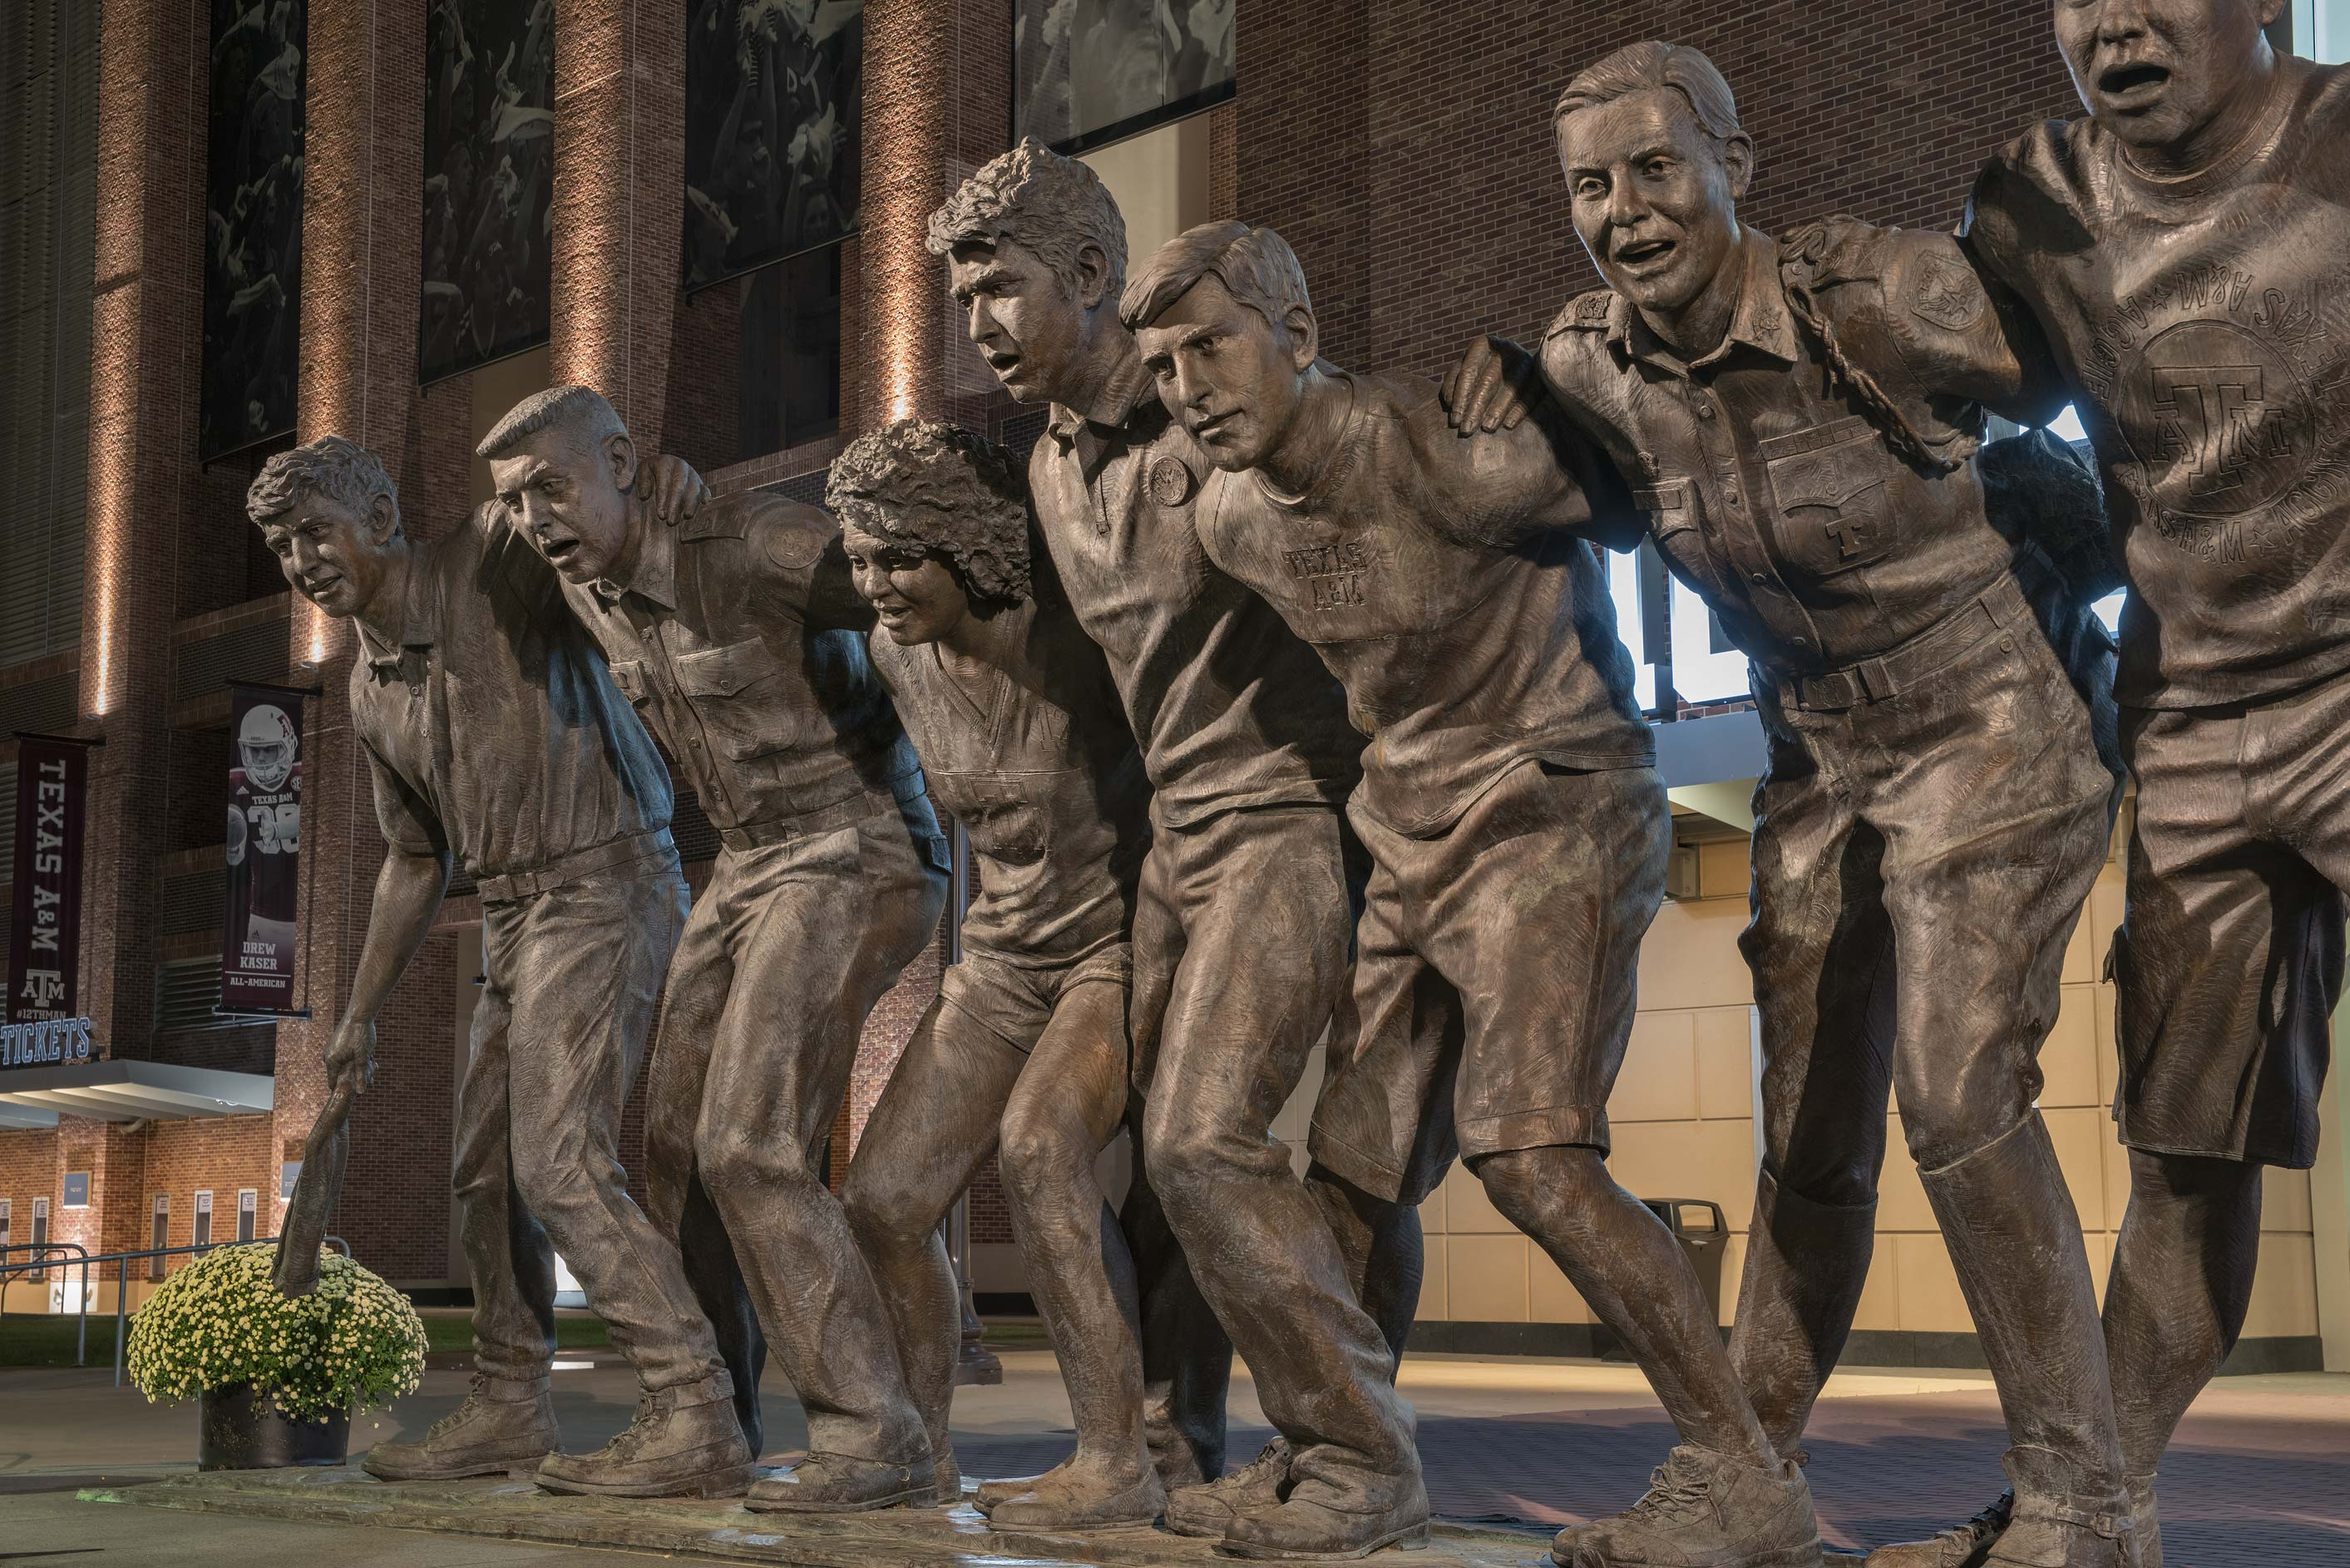 Bronze figures of 12 students on War Hymn Statue...A&M University. College Station, Texas